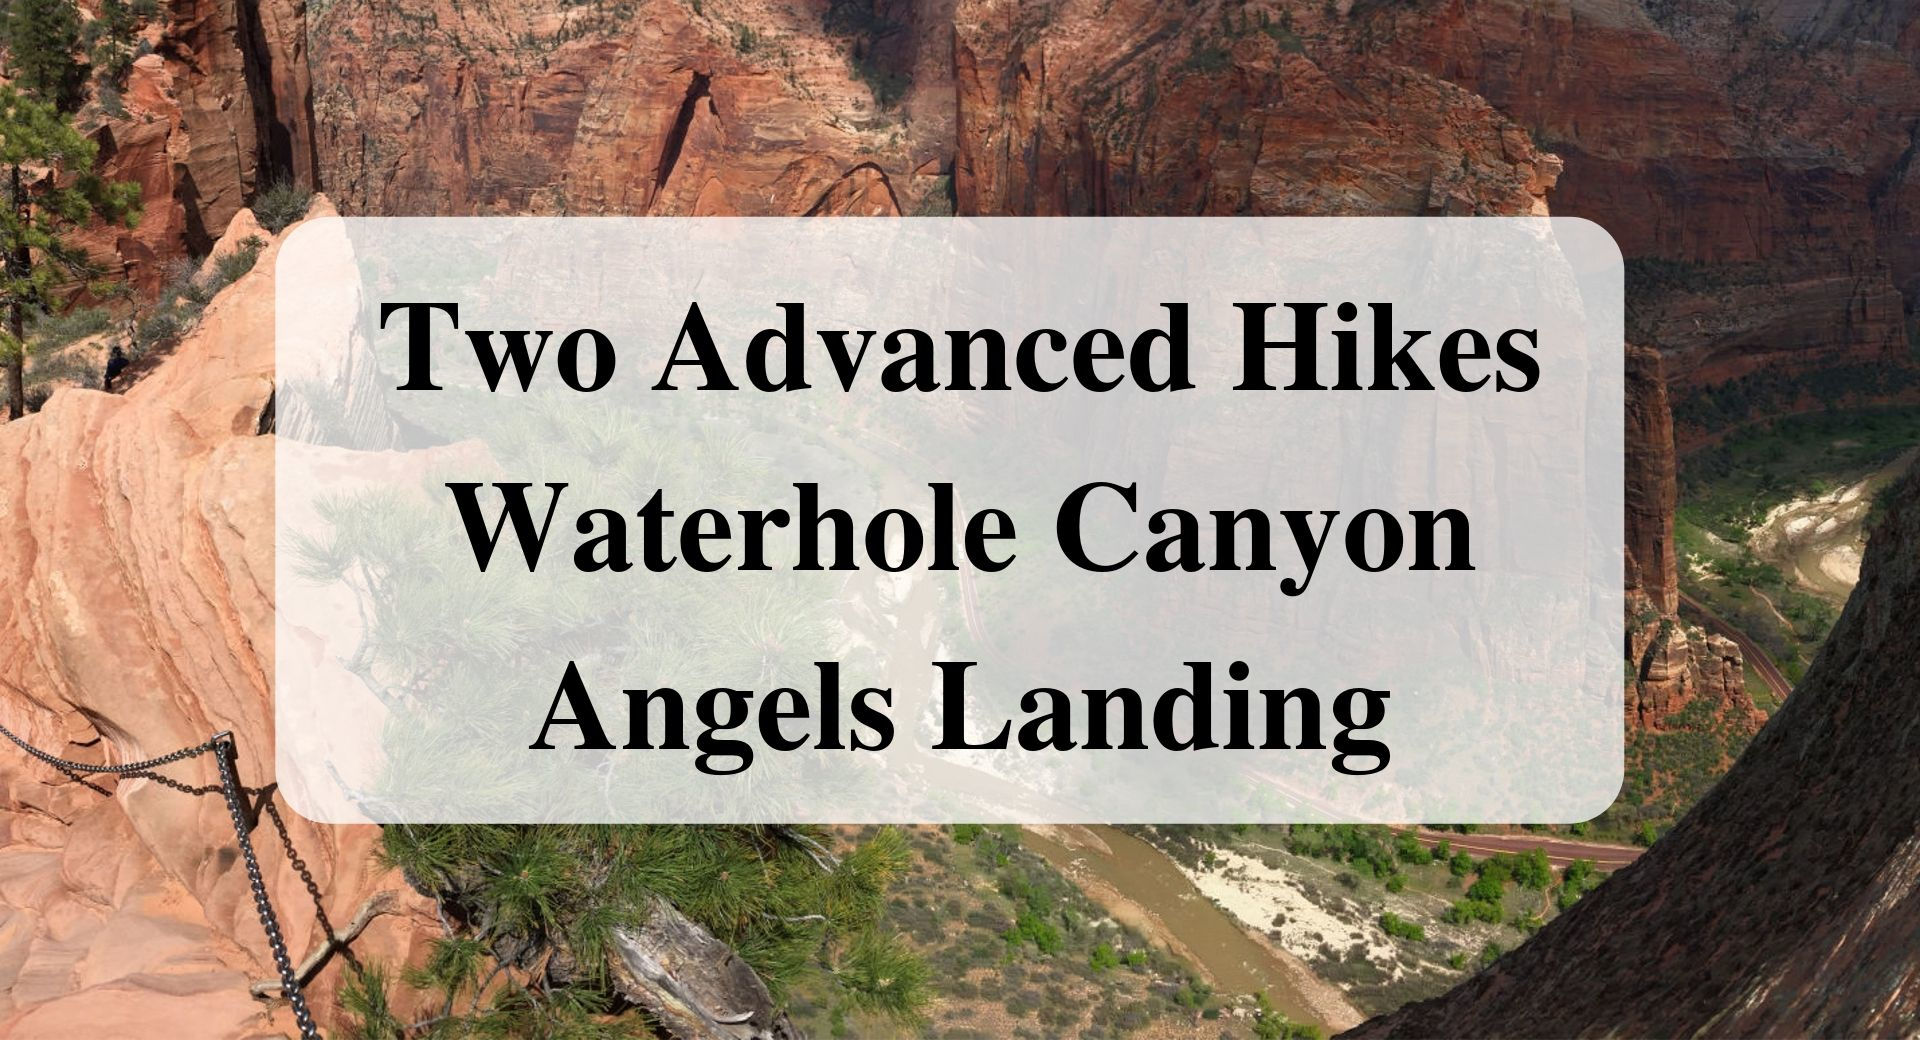 Two Advanced Hikes Waterhole Canyon Angels Landing Forever sabbatical